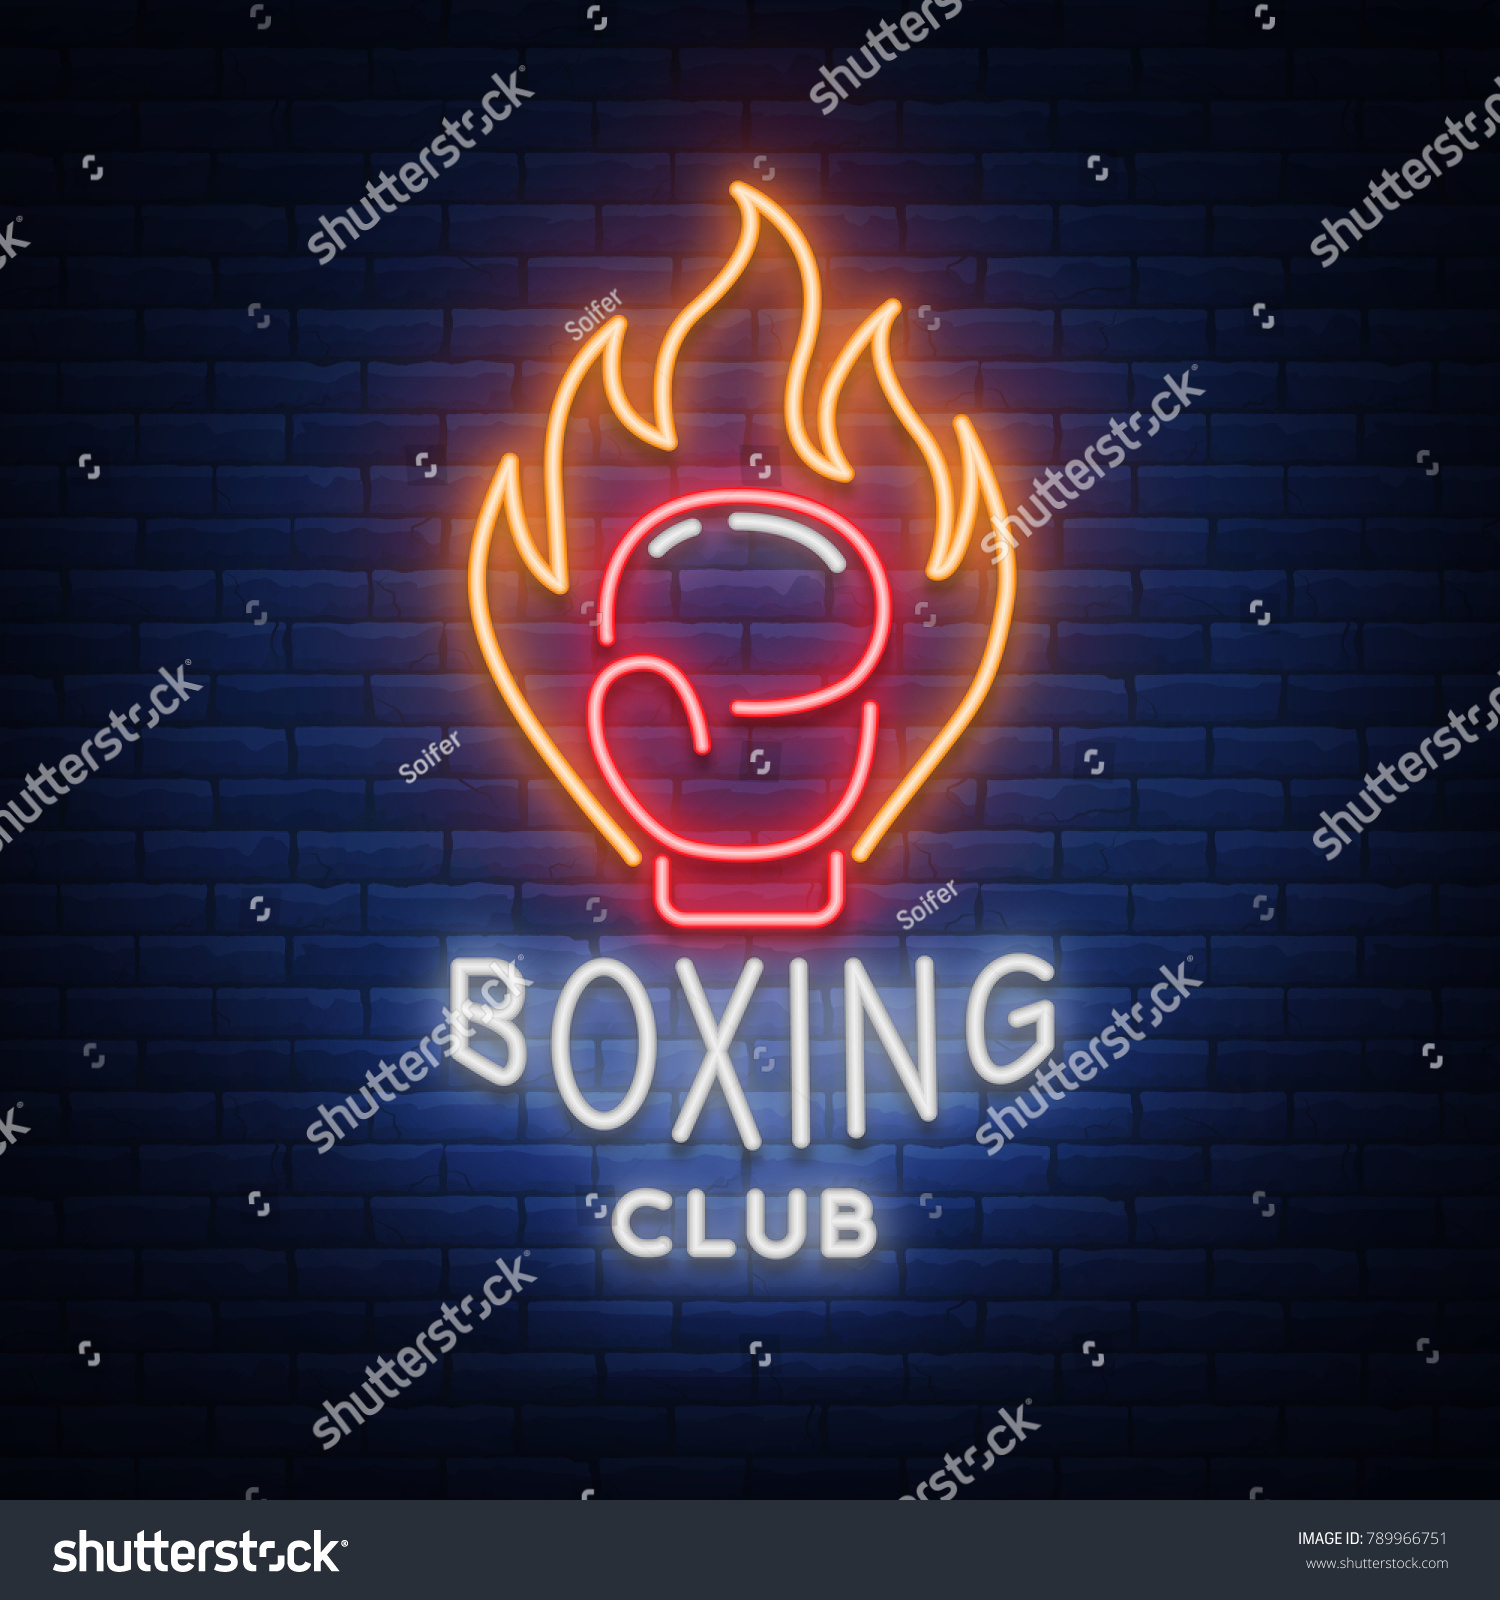 Royalty Free Stock Illustration Of Boxing Club Logo Neon Style